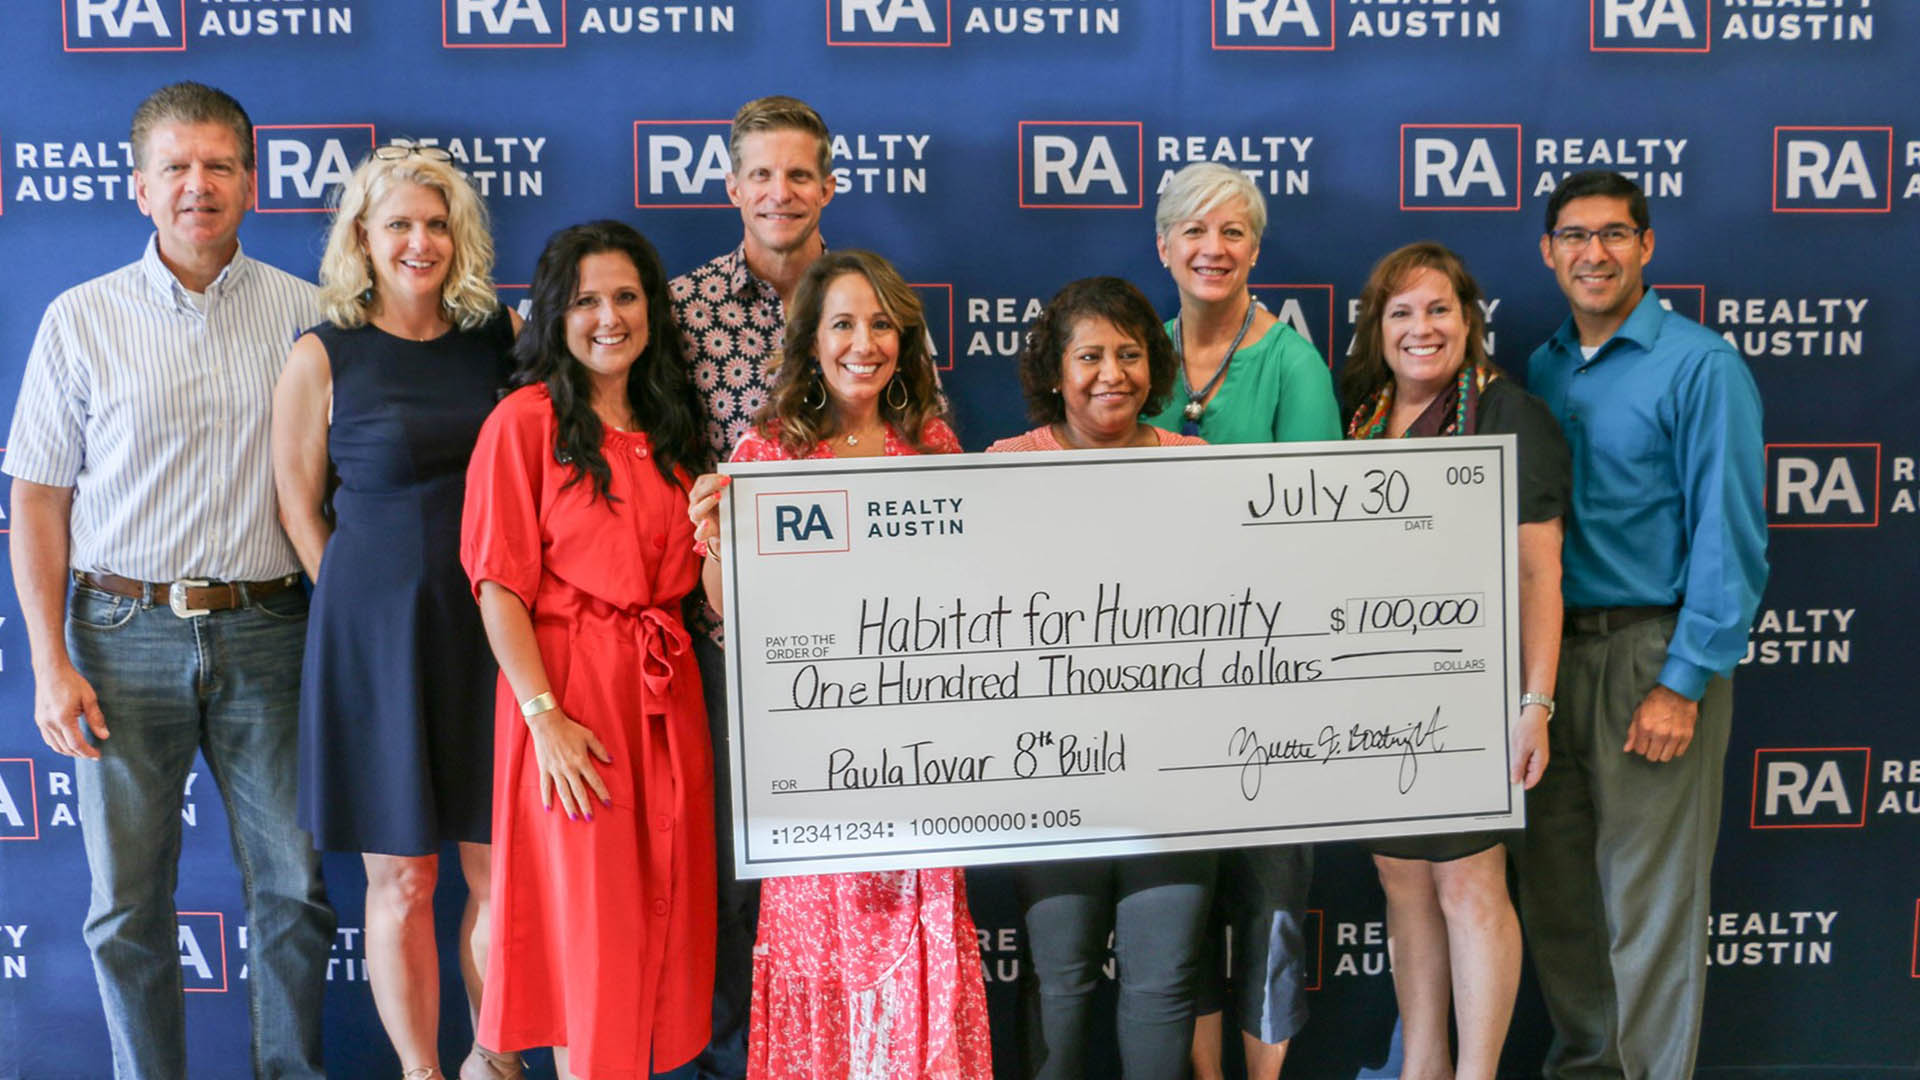 Image of Realty Austin Raised $100,000 for Austin Habitat for Humanity 2019